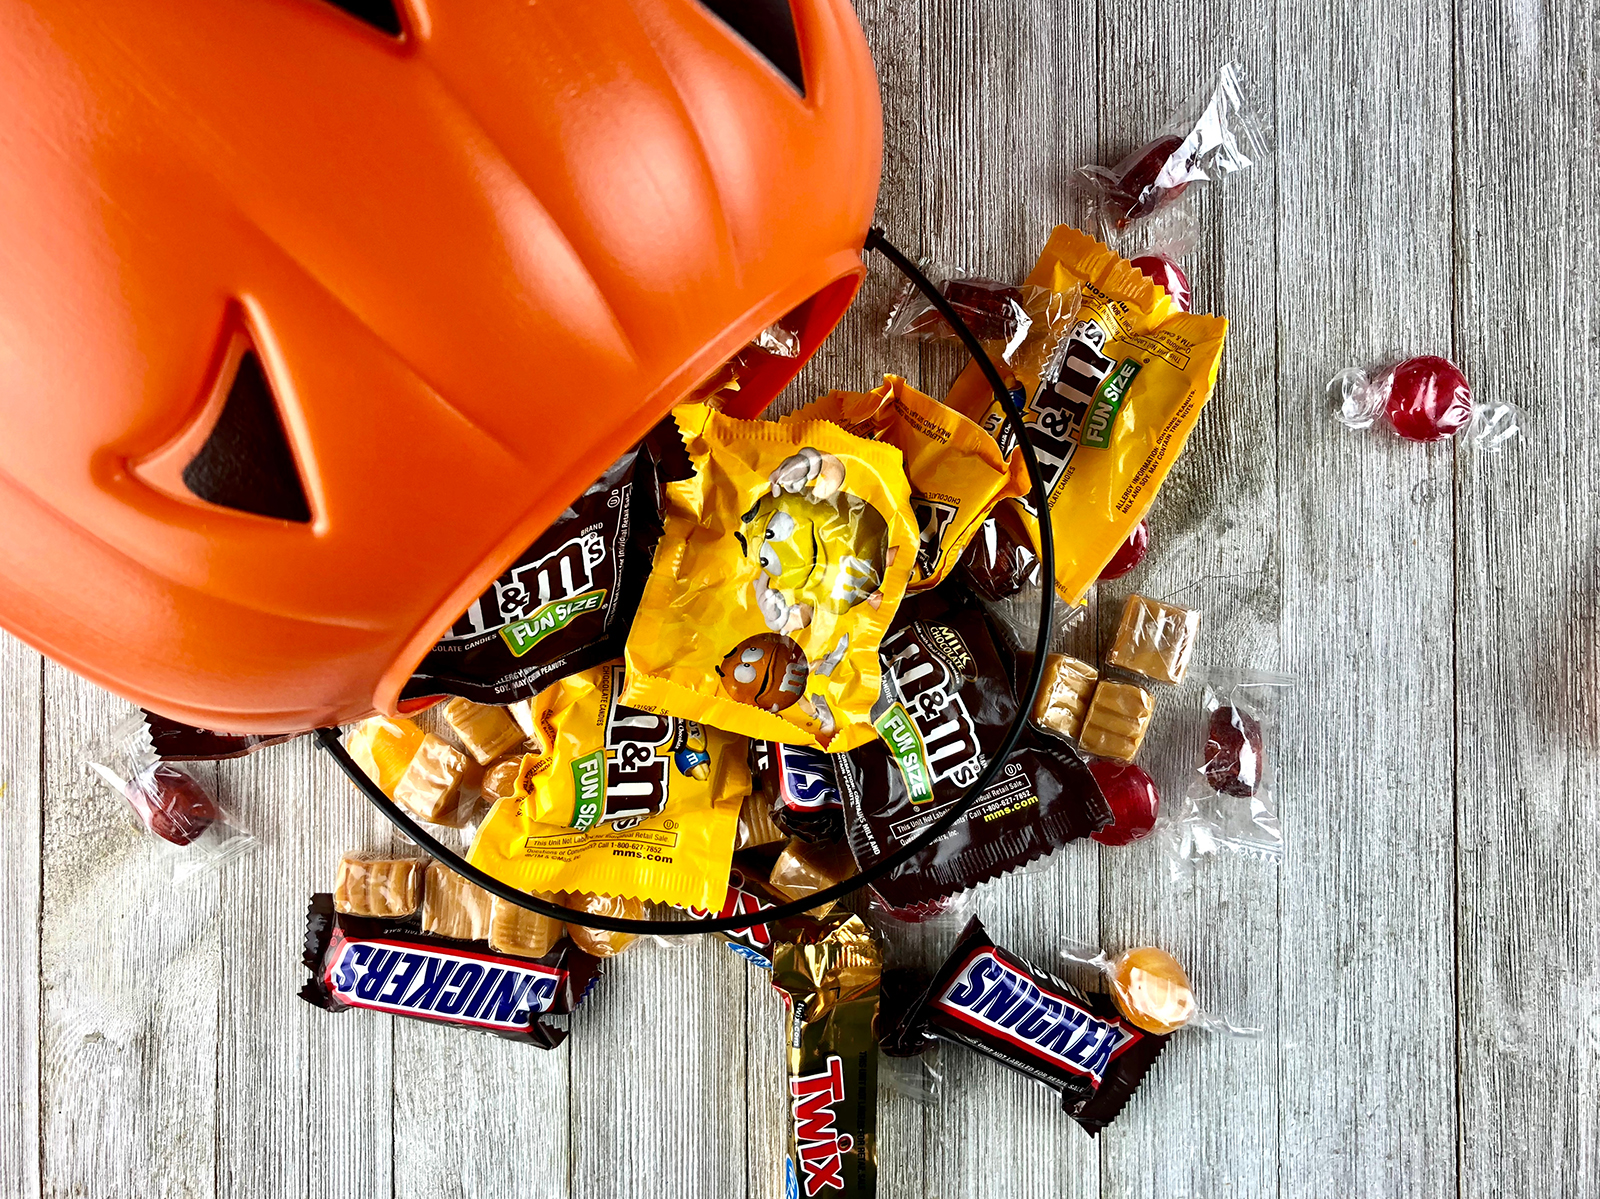 Stay inside this Halloween with your household, doctors say